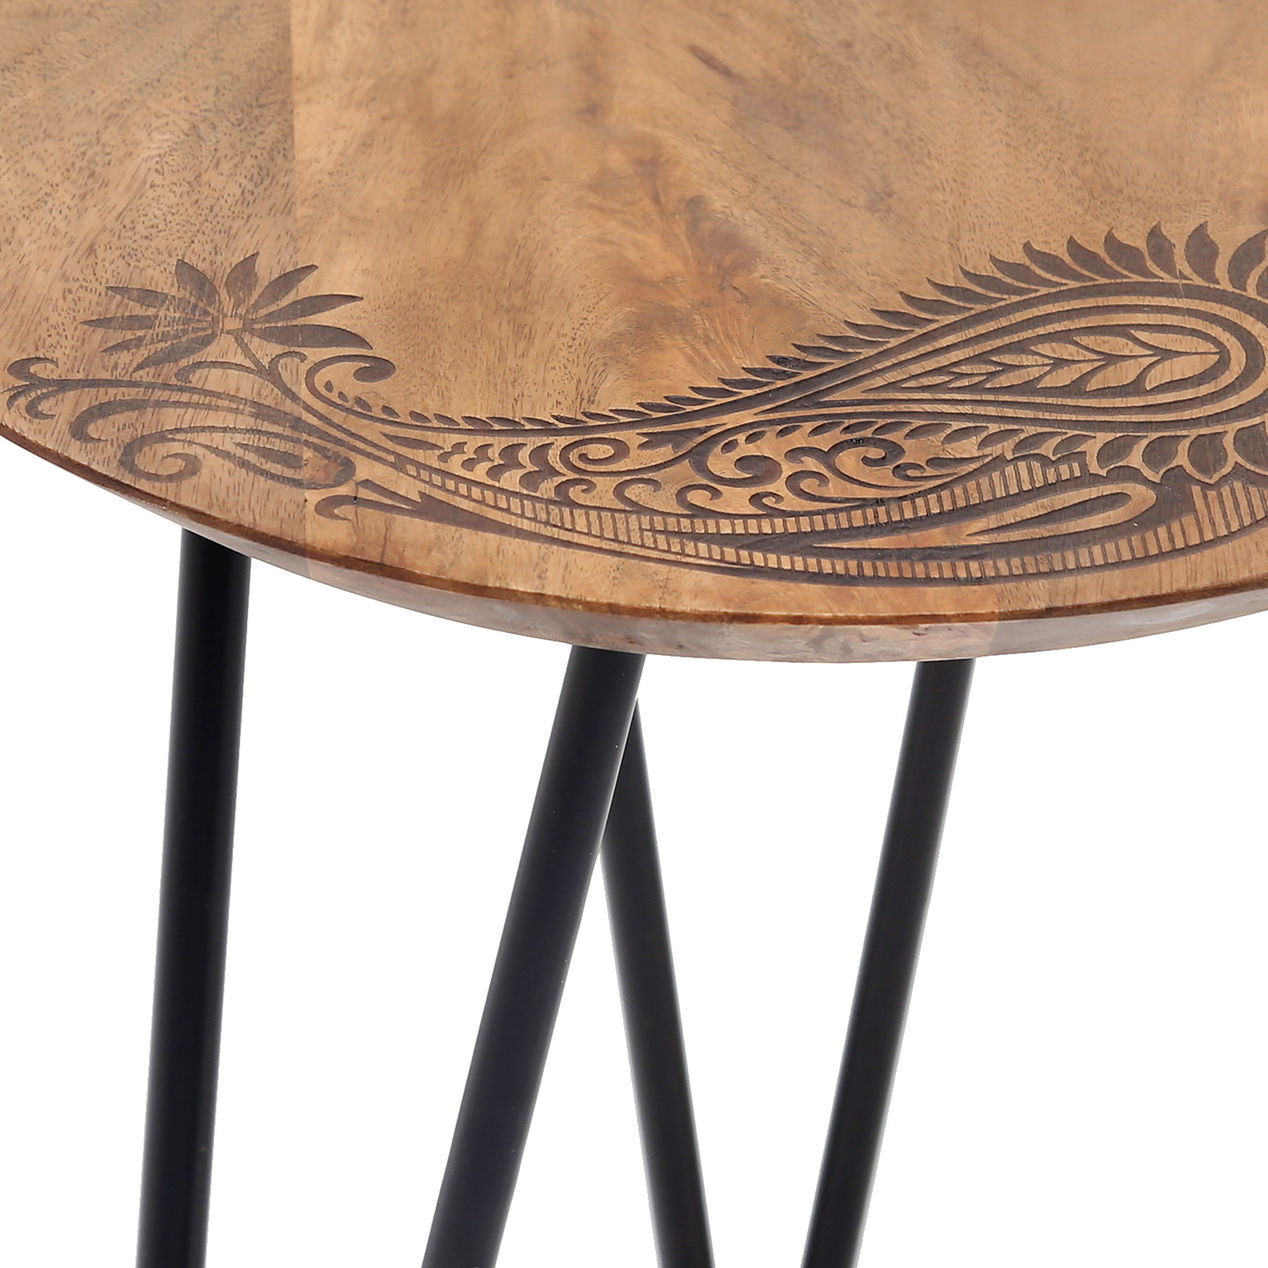 hairpin leg tbl home accent table decorative mirrors teak wood dining industrial look end tables antique circular fall round tablecloth colorful console ashley leather recliner